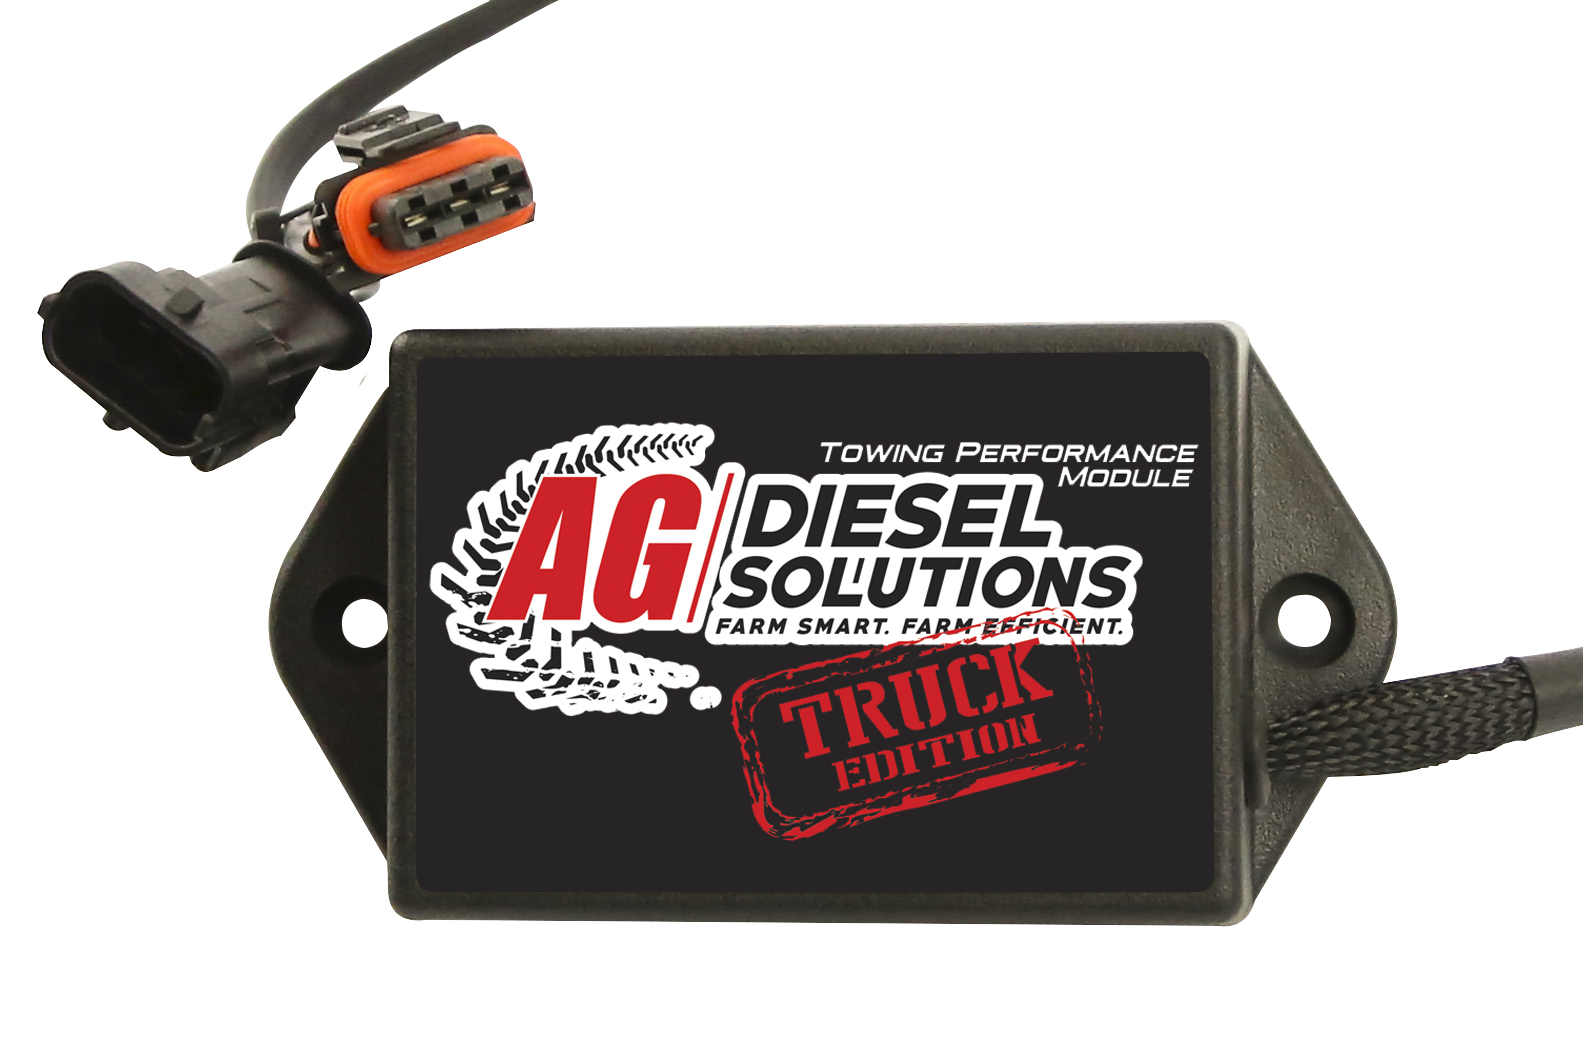 22300_Ag Diesel Solutions Electronic Performance Module for 17 - 19 6.0L Powerstroke Engines